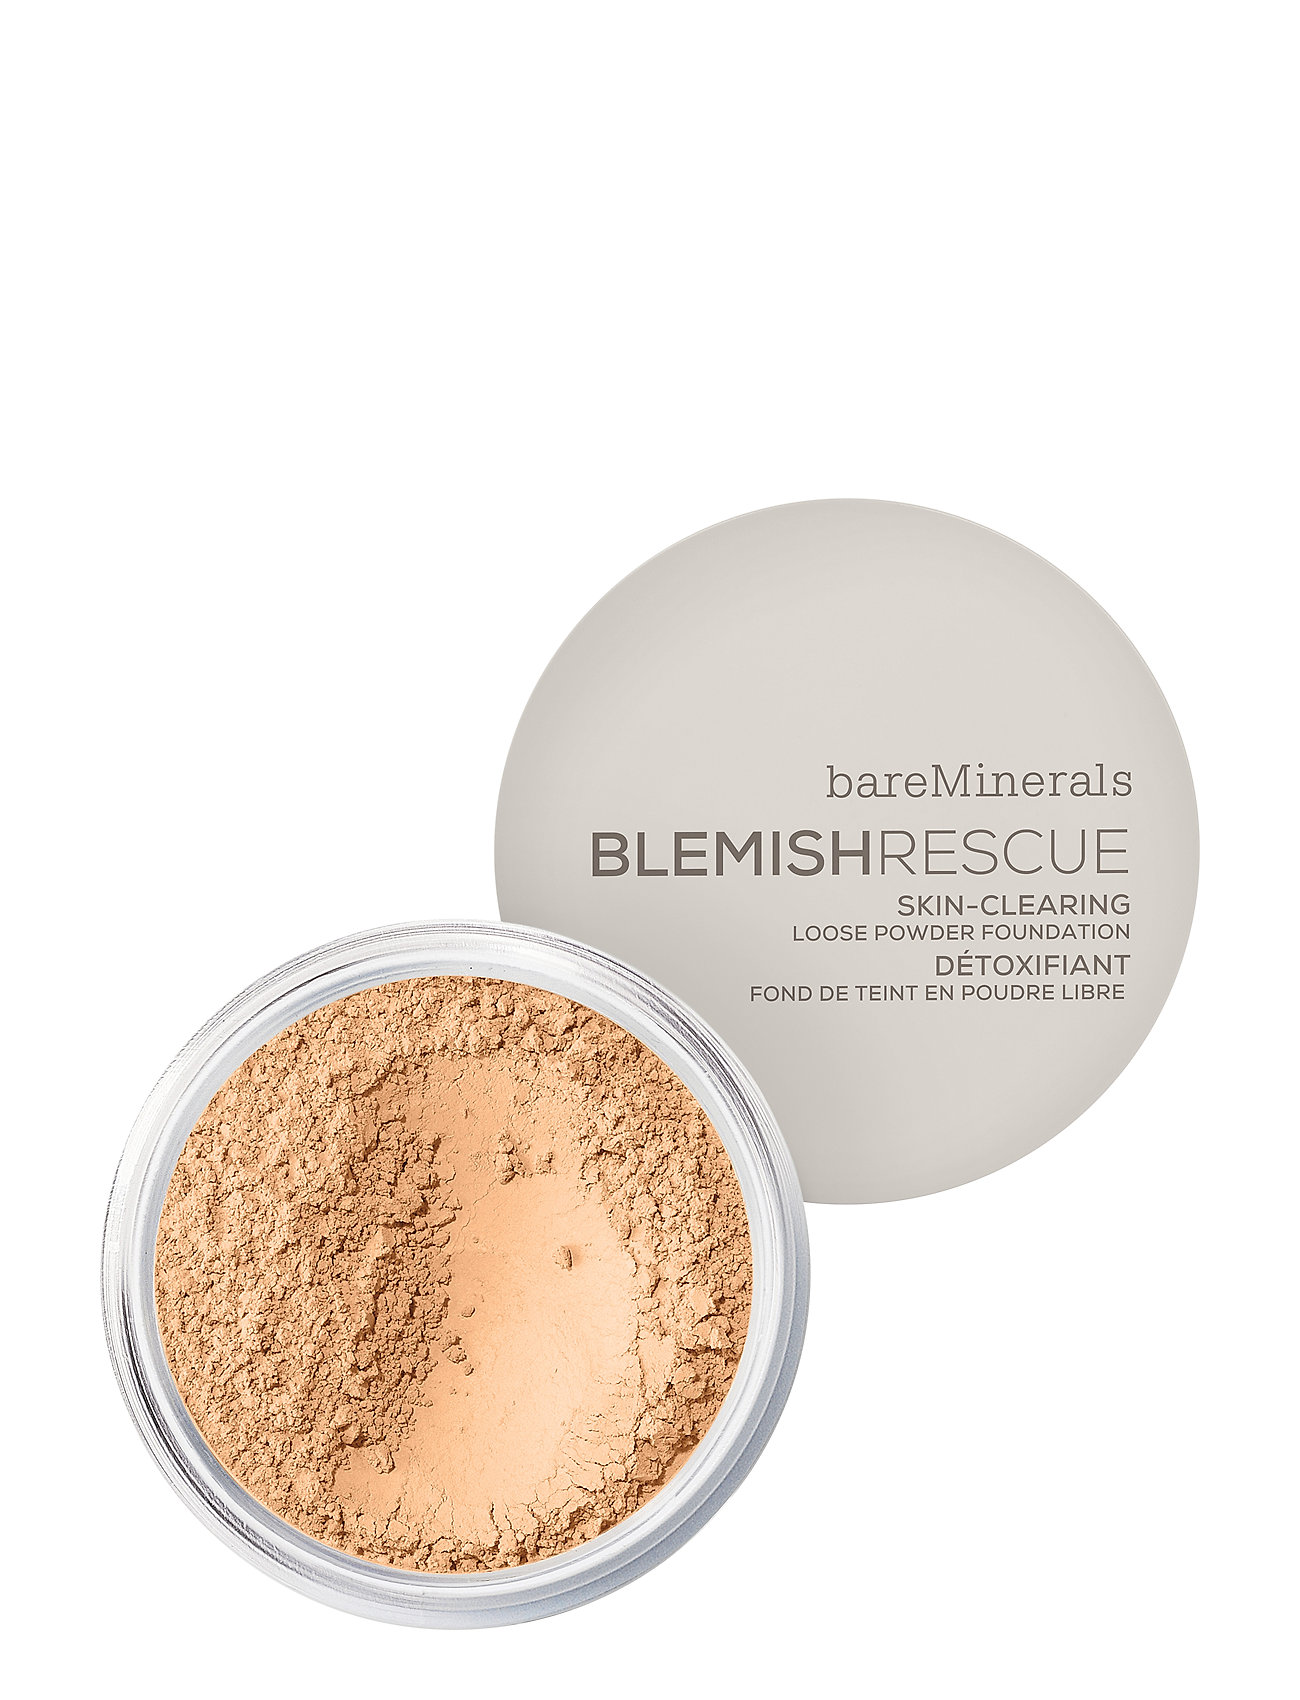 Image of Blemish Rescue Skin-Clearing Loose Powder Foundation Foundation Makeup BareMinerals (3393714565)